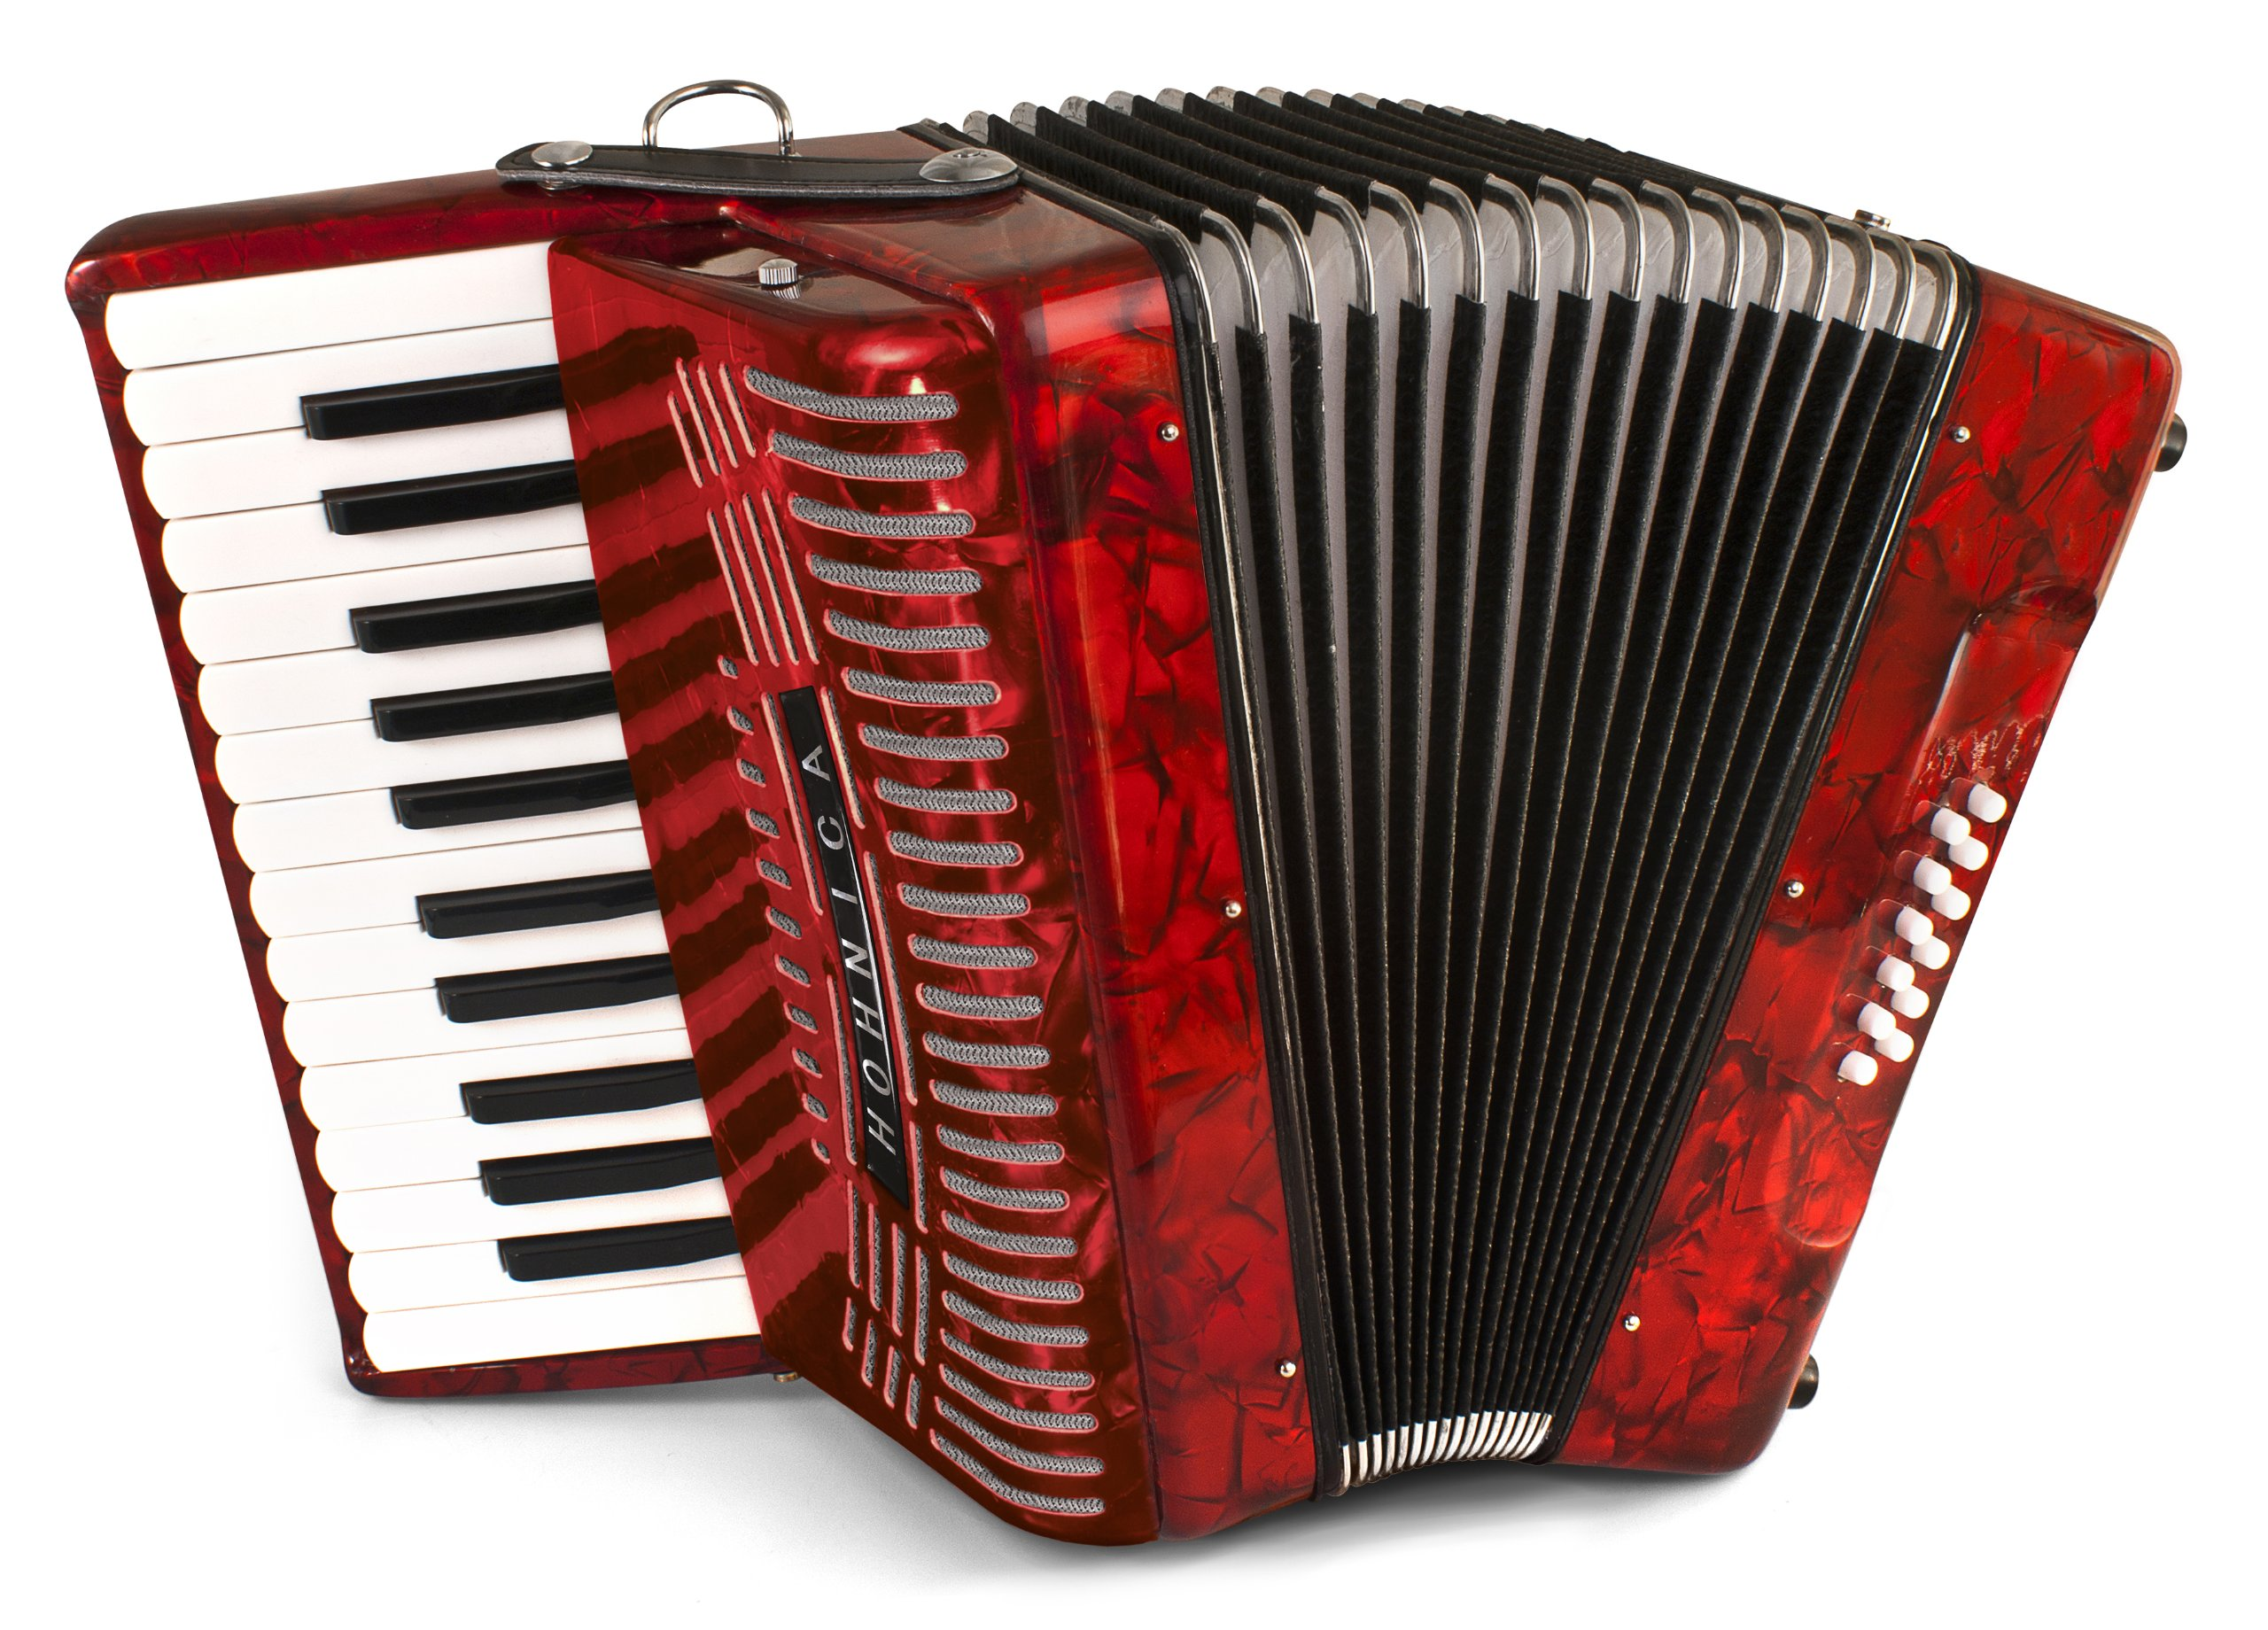 Hohner Accordions 1303-RED 12 Bass Entry Level Piano Accordion, Red by Hohner Accordions